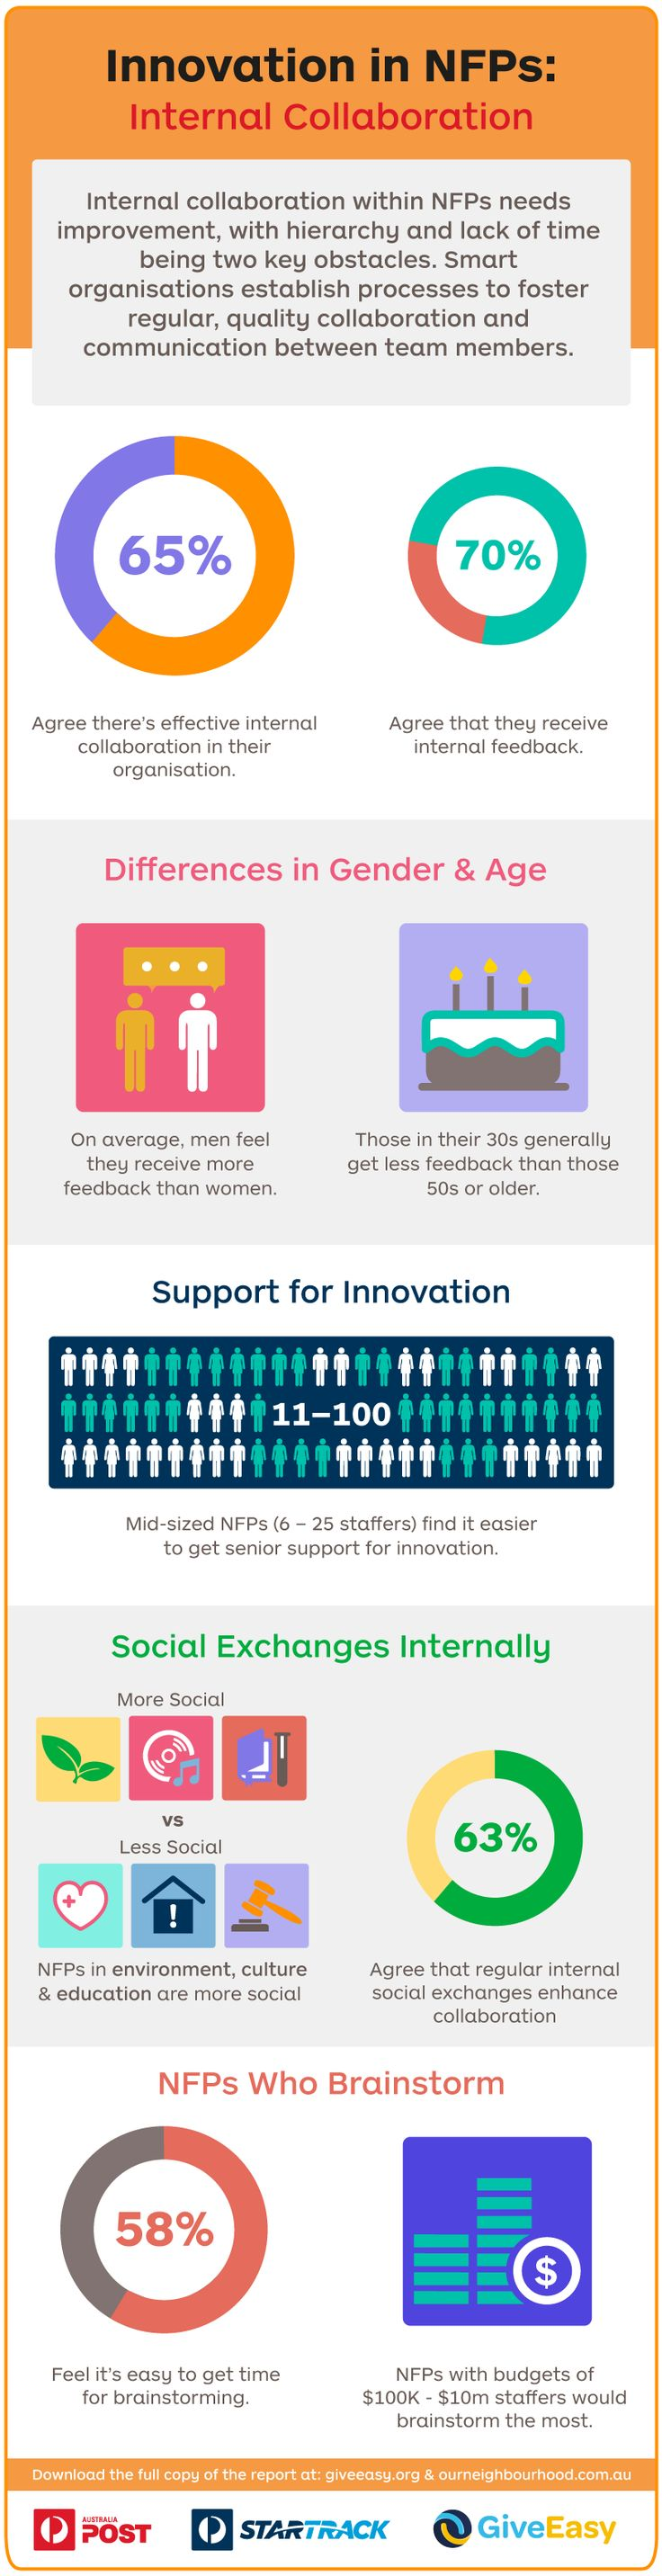 More internal social events in the environment, culture and education sectors lead to more innovation, with team members knowing each other well. Read the full report here: auspo.st/1xwnuez #NonProfit #Innovation